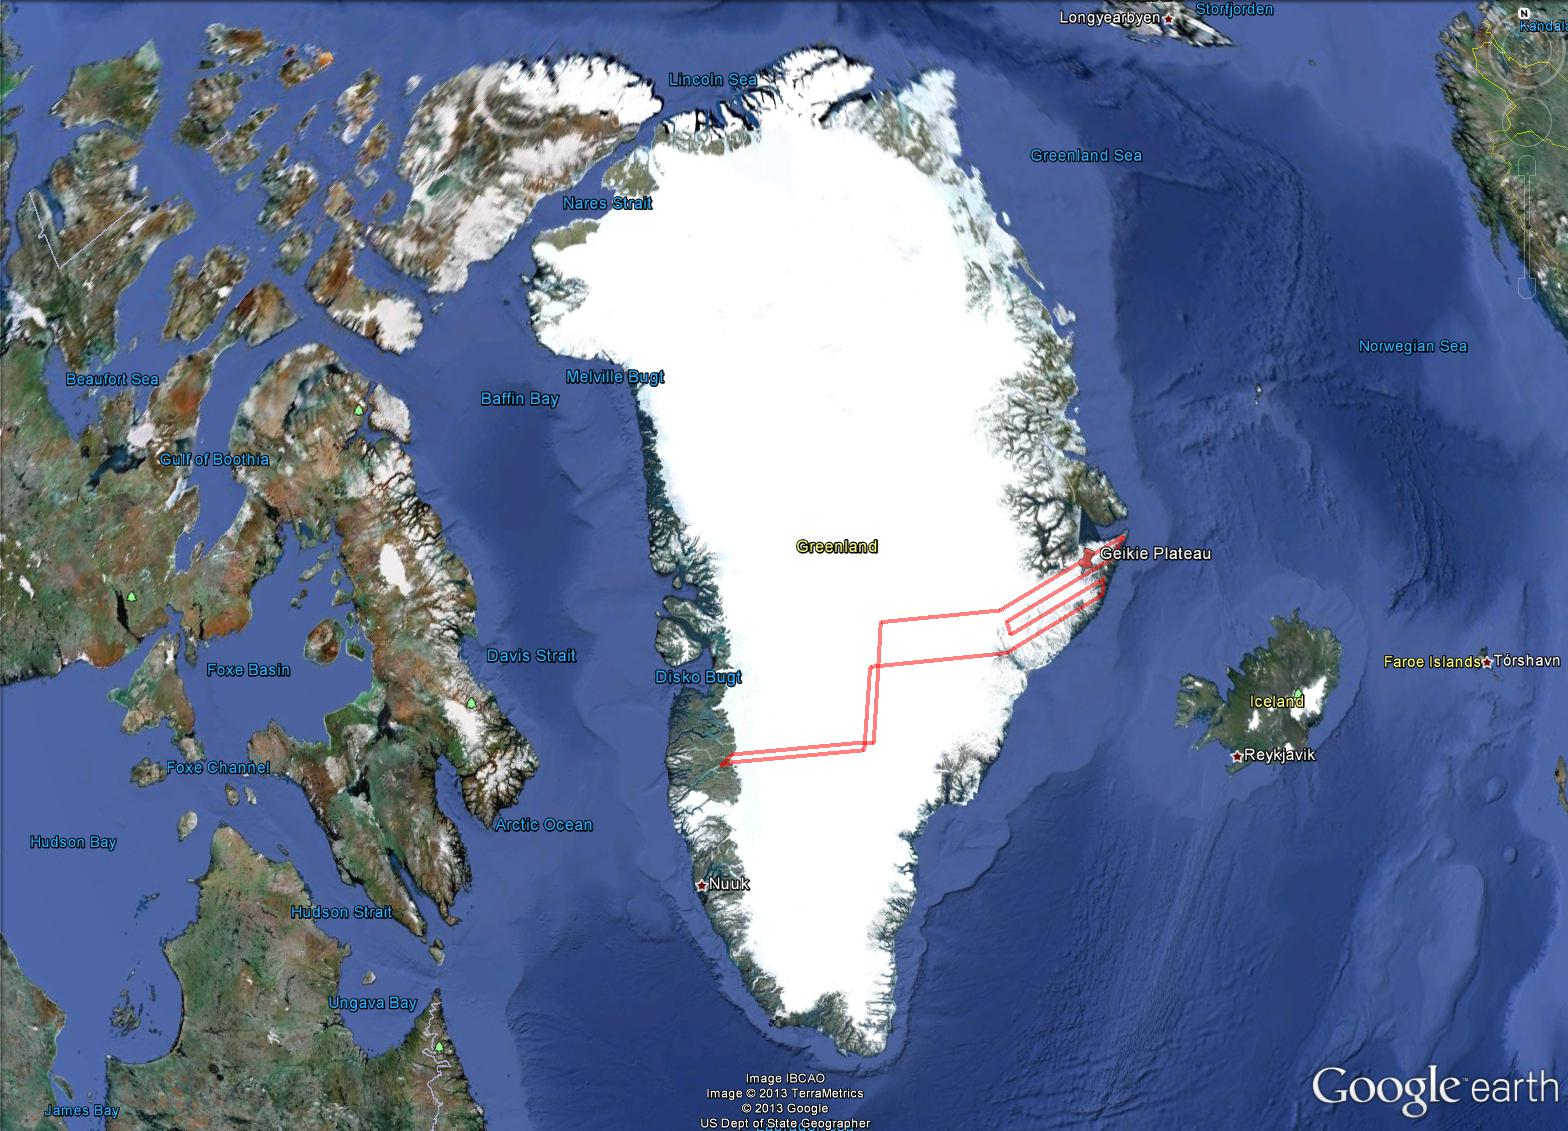 Flight path for Apr. 11 survey of Greenland's Geikie Peninsula